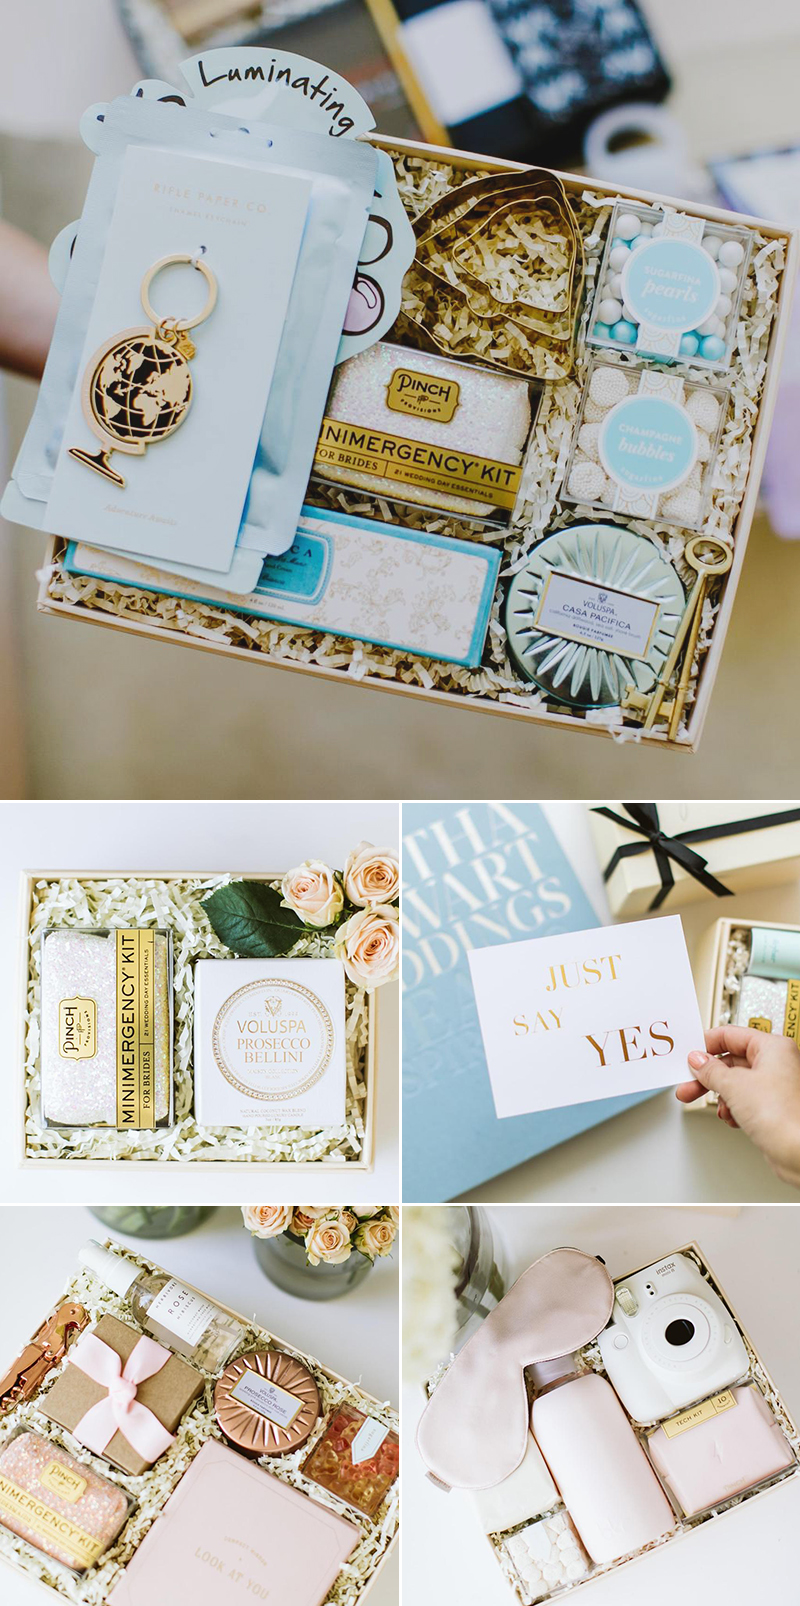 Personalized Bridal Party Gift Ideas Boxfox Curated Gift Boxes That Show You Really Care Praise Wedding